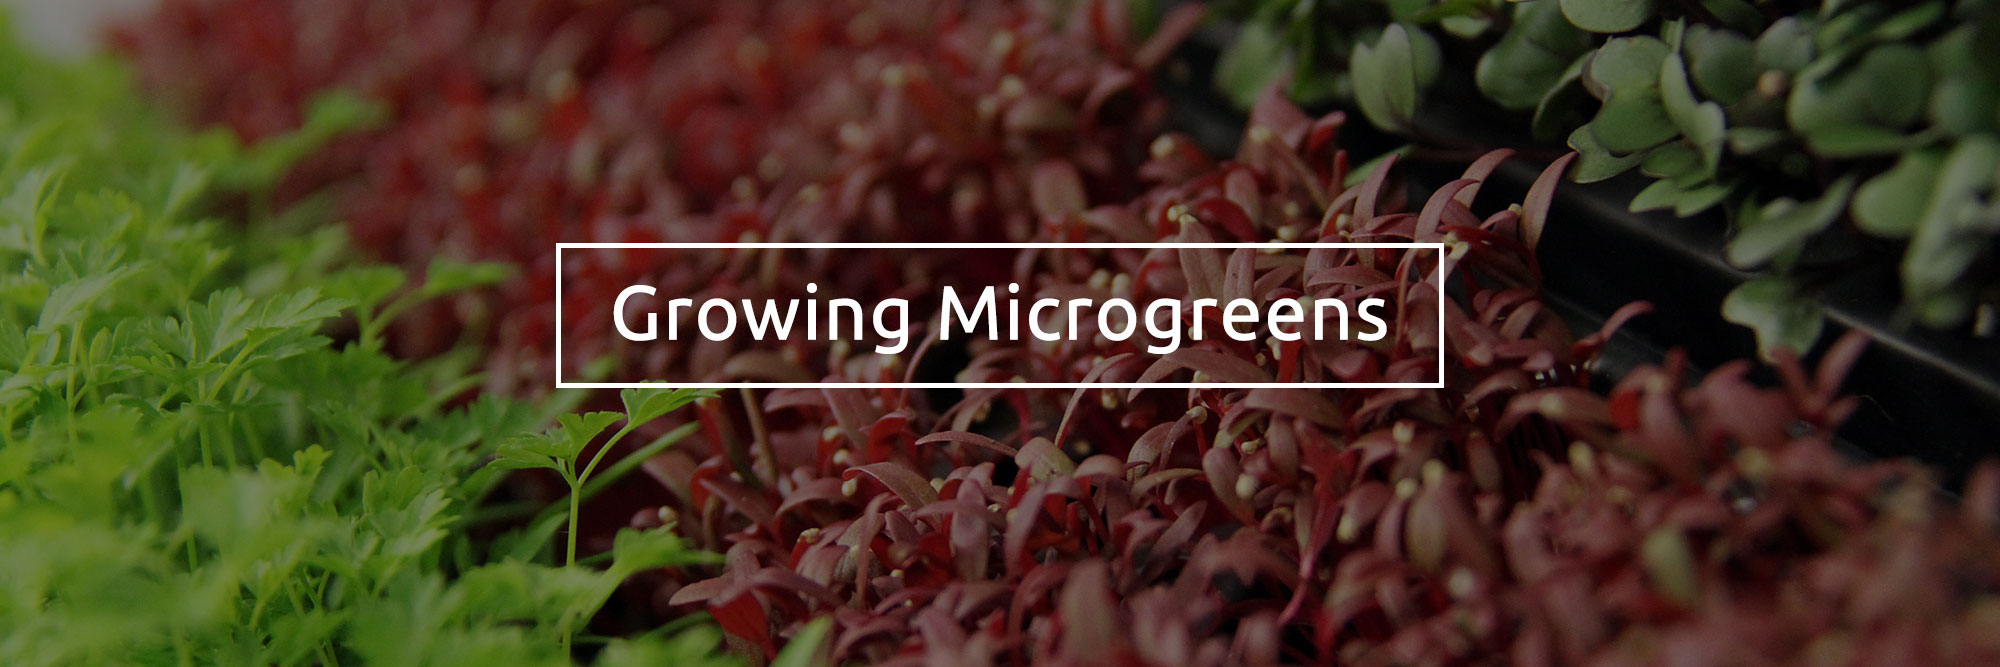 growing-microgreens